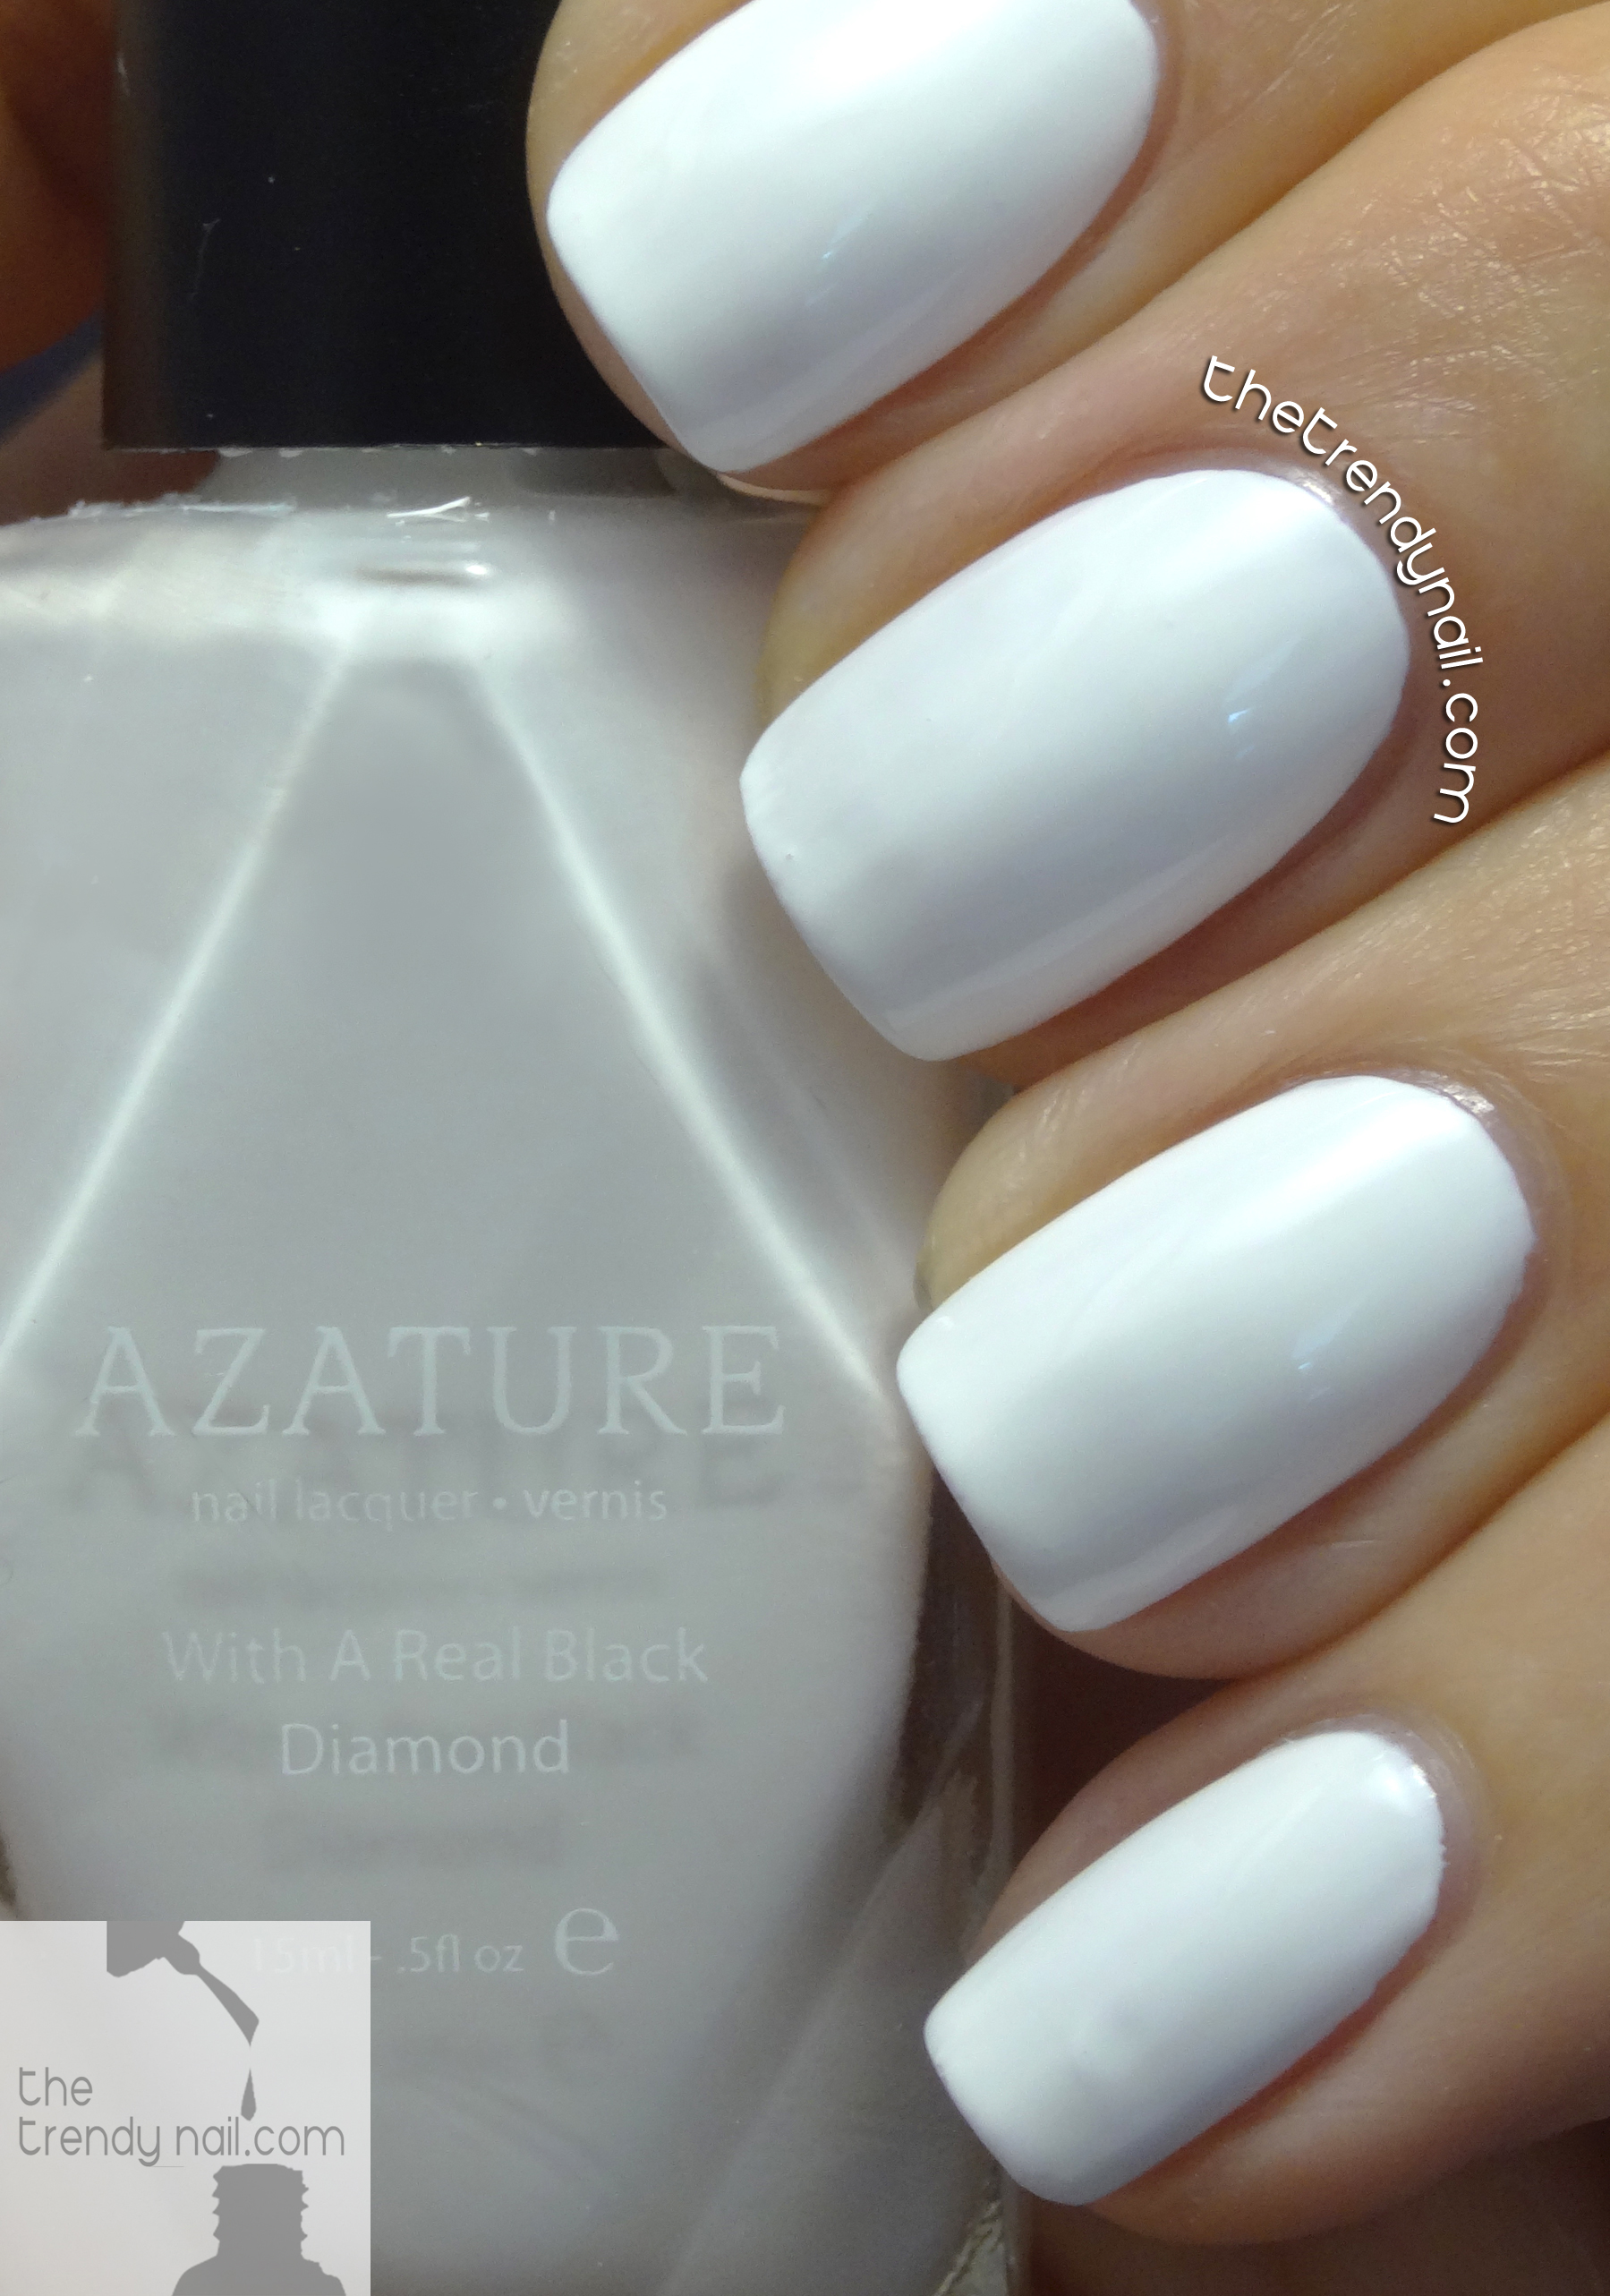 Azature-Faint-White-Bottle